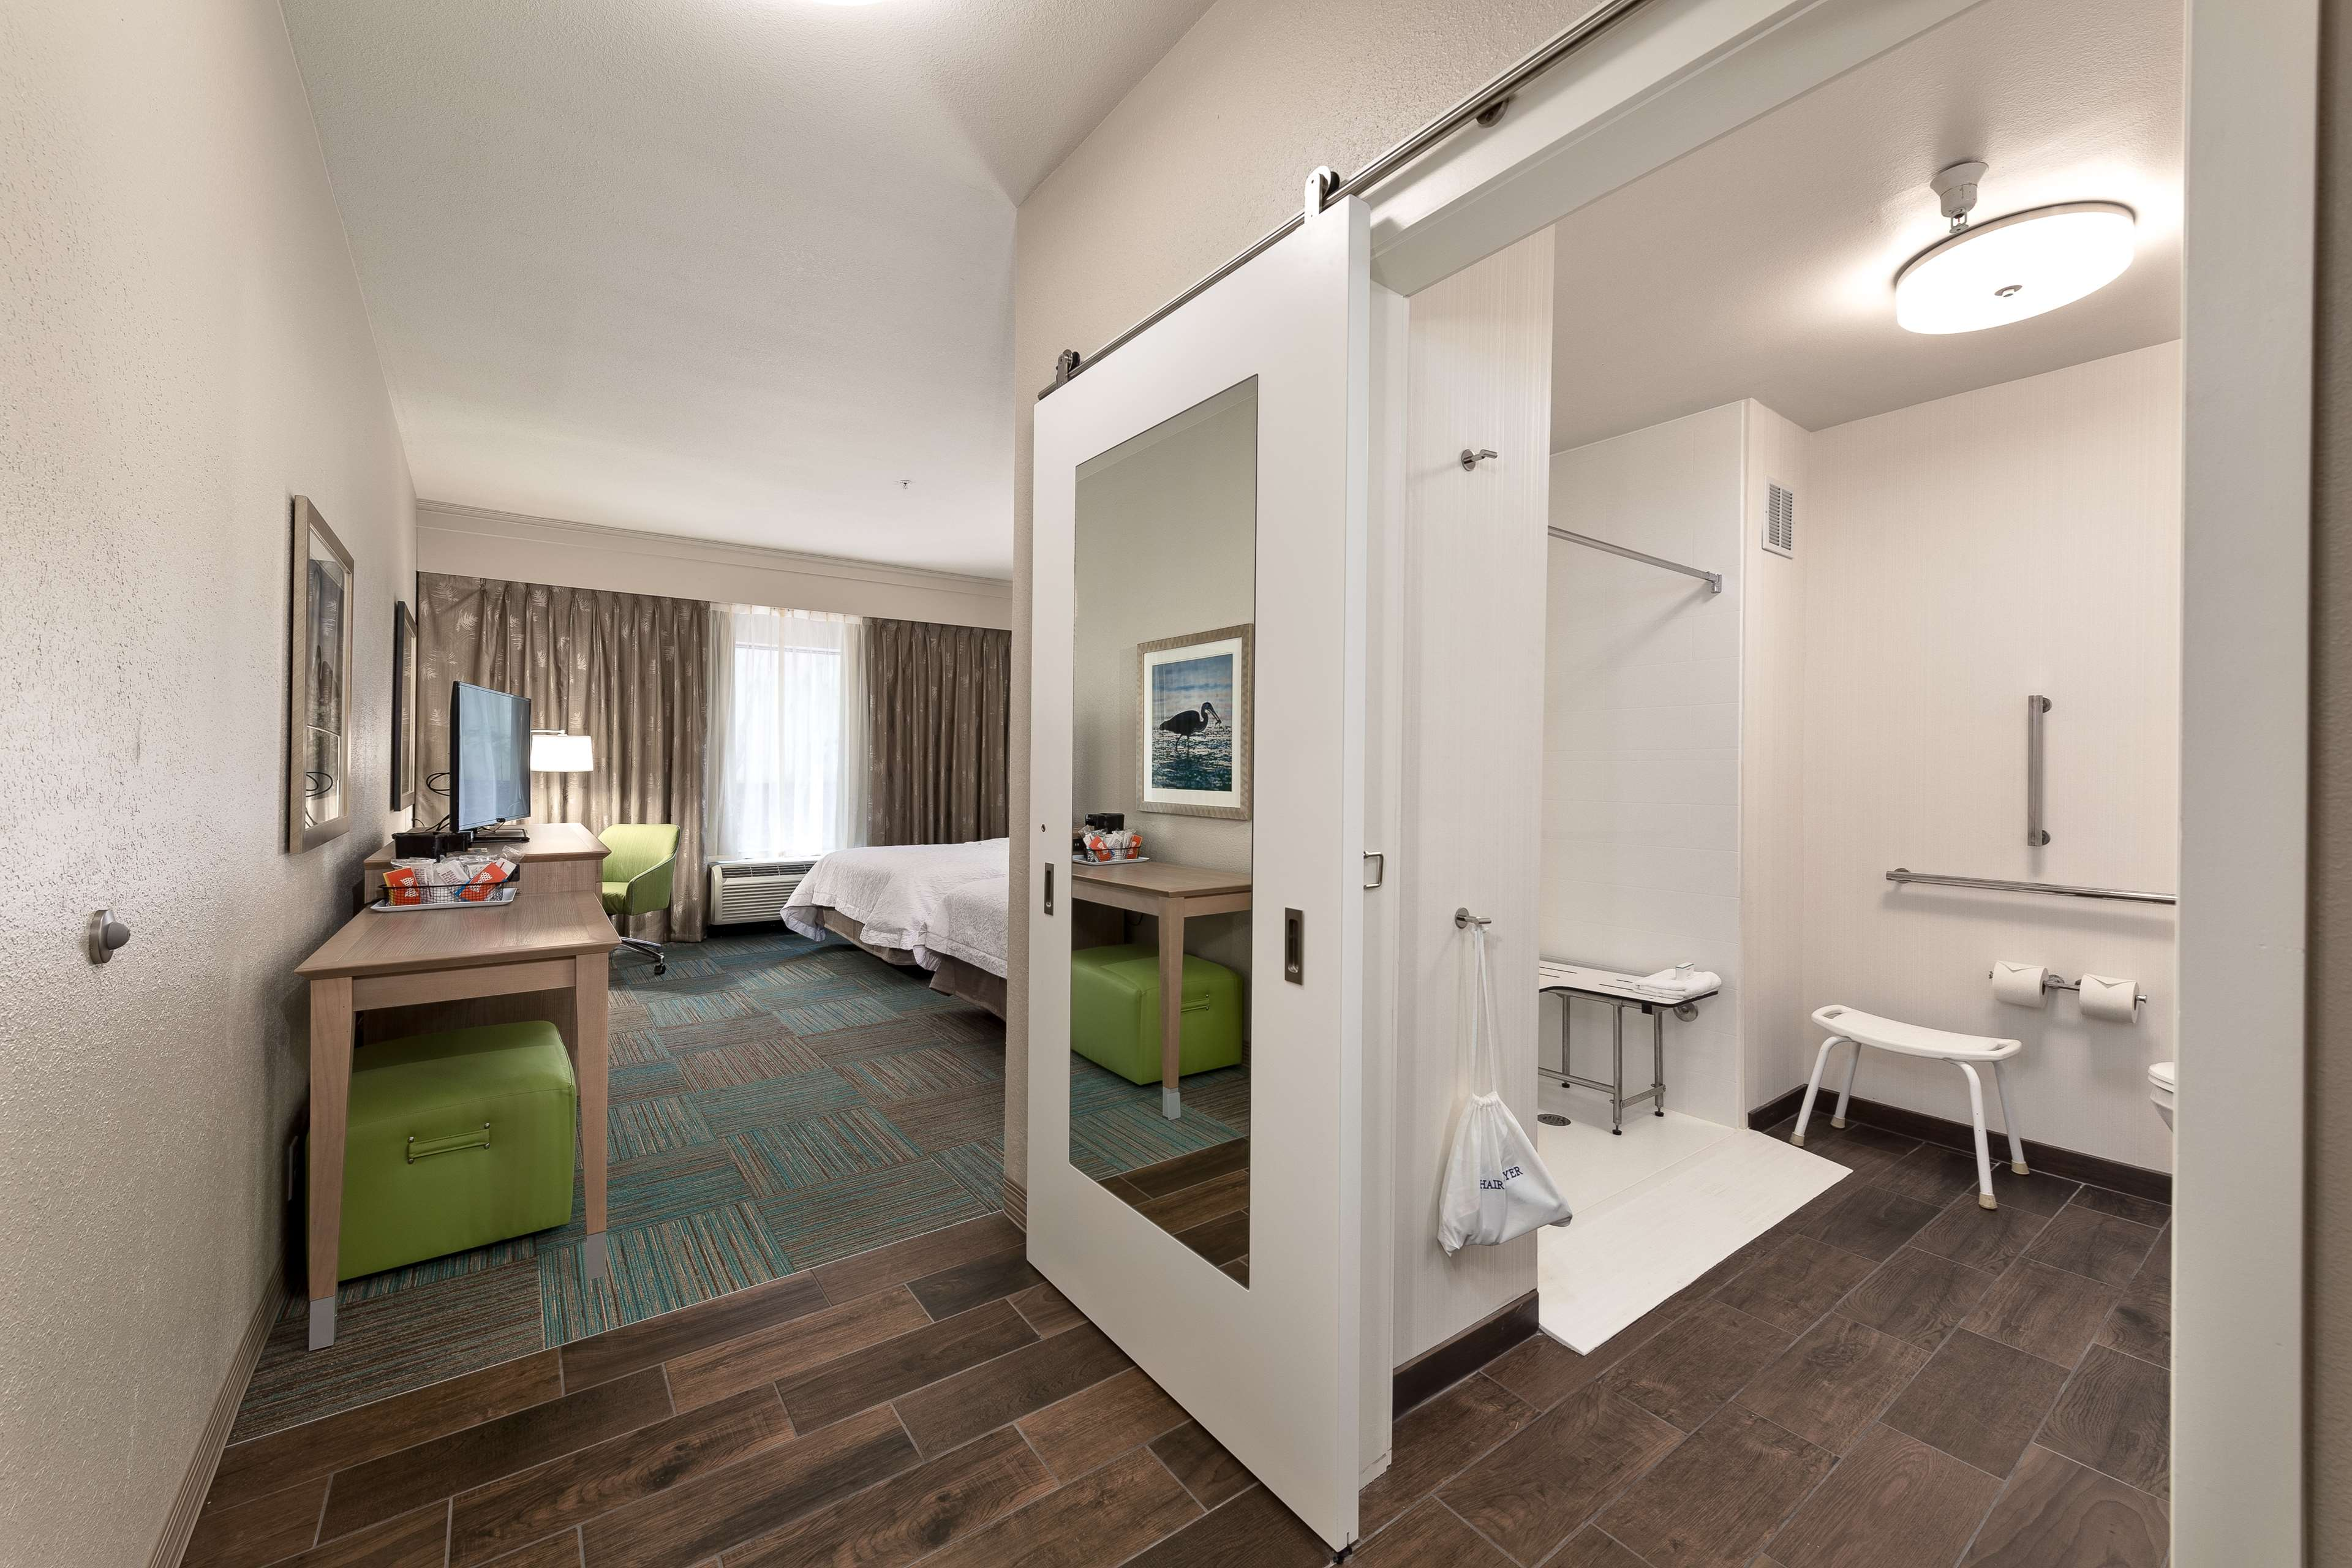 Hampton Inn Niceville-Eglin Air Force Base image 17